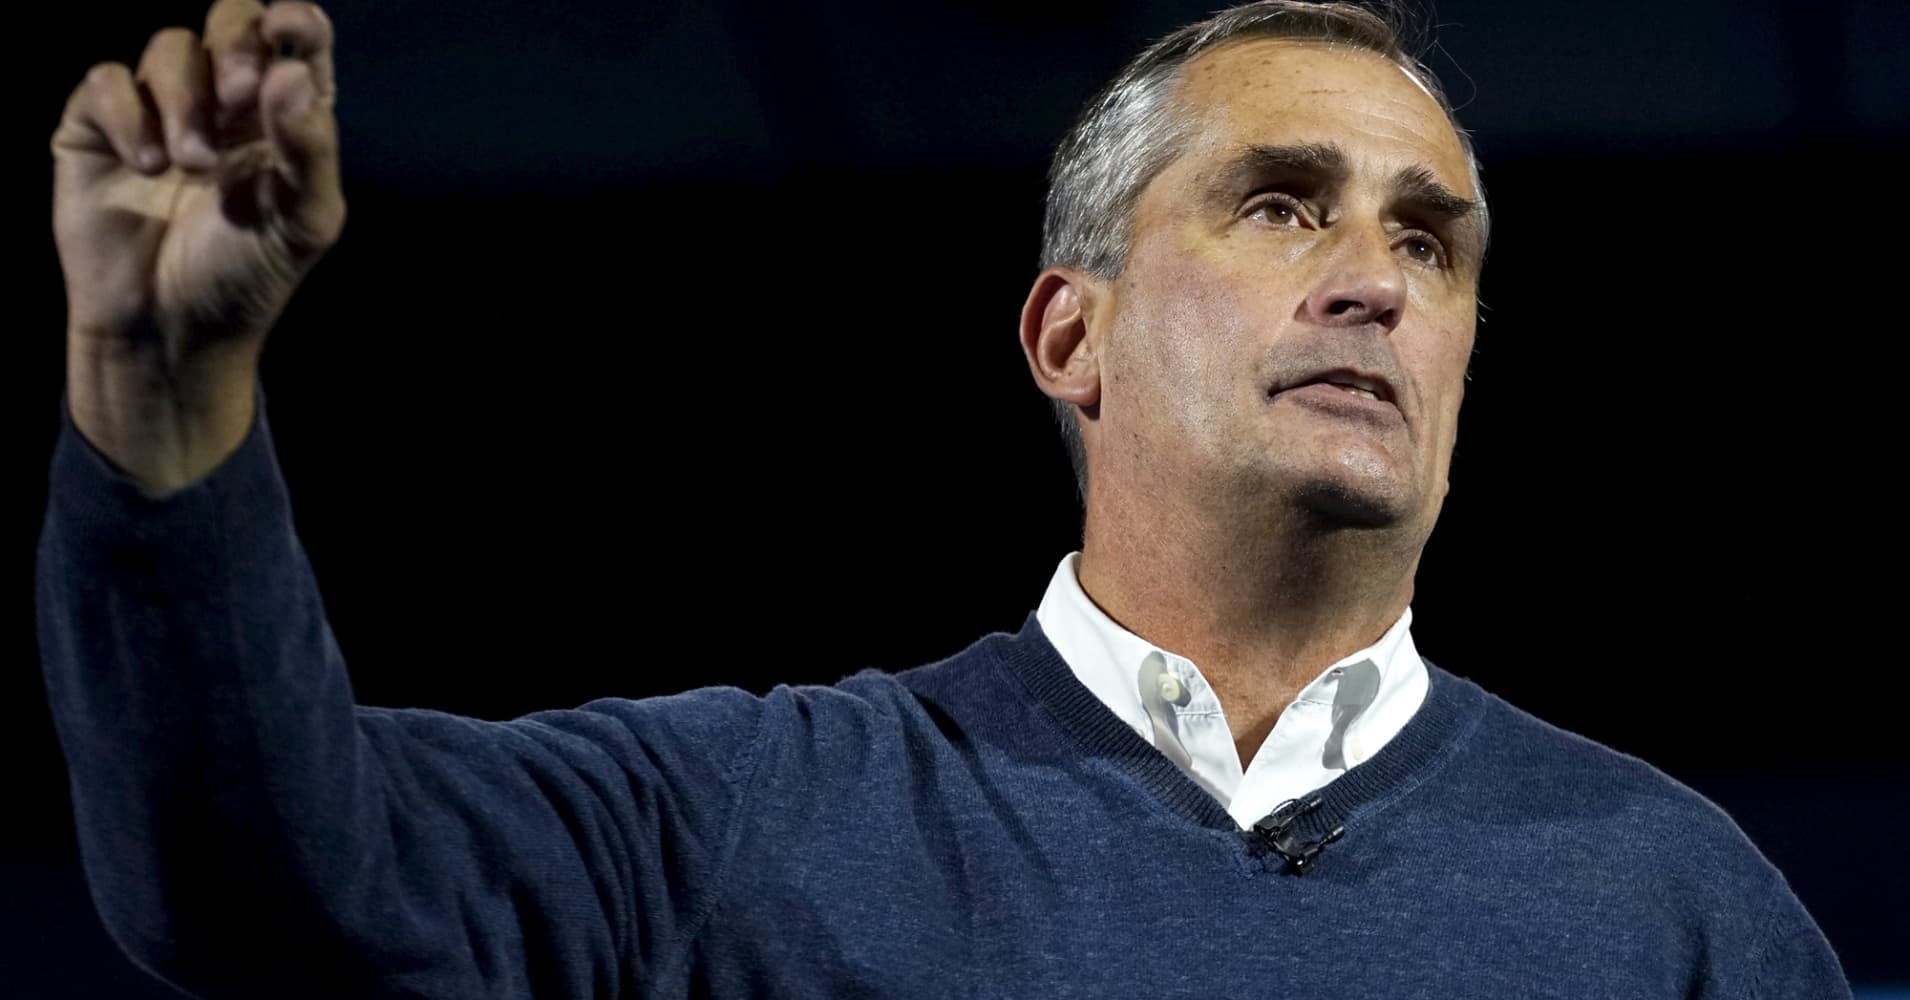 Intel CEO to employees: 'We are going to take more risks'